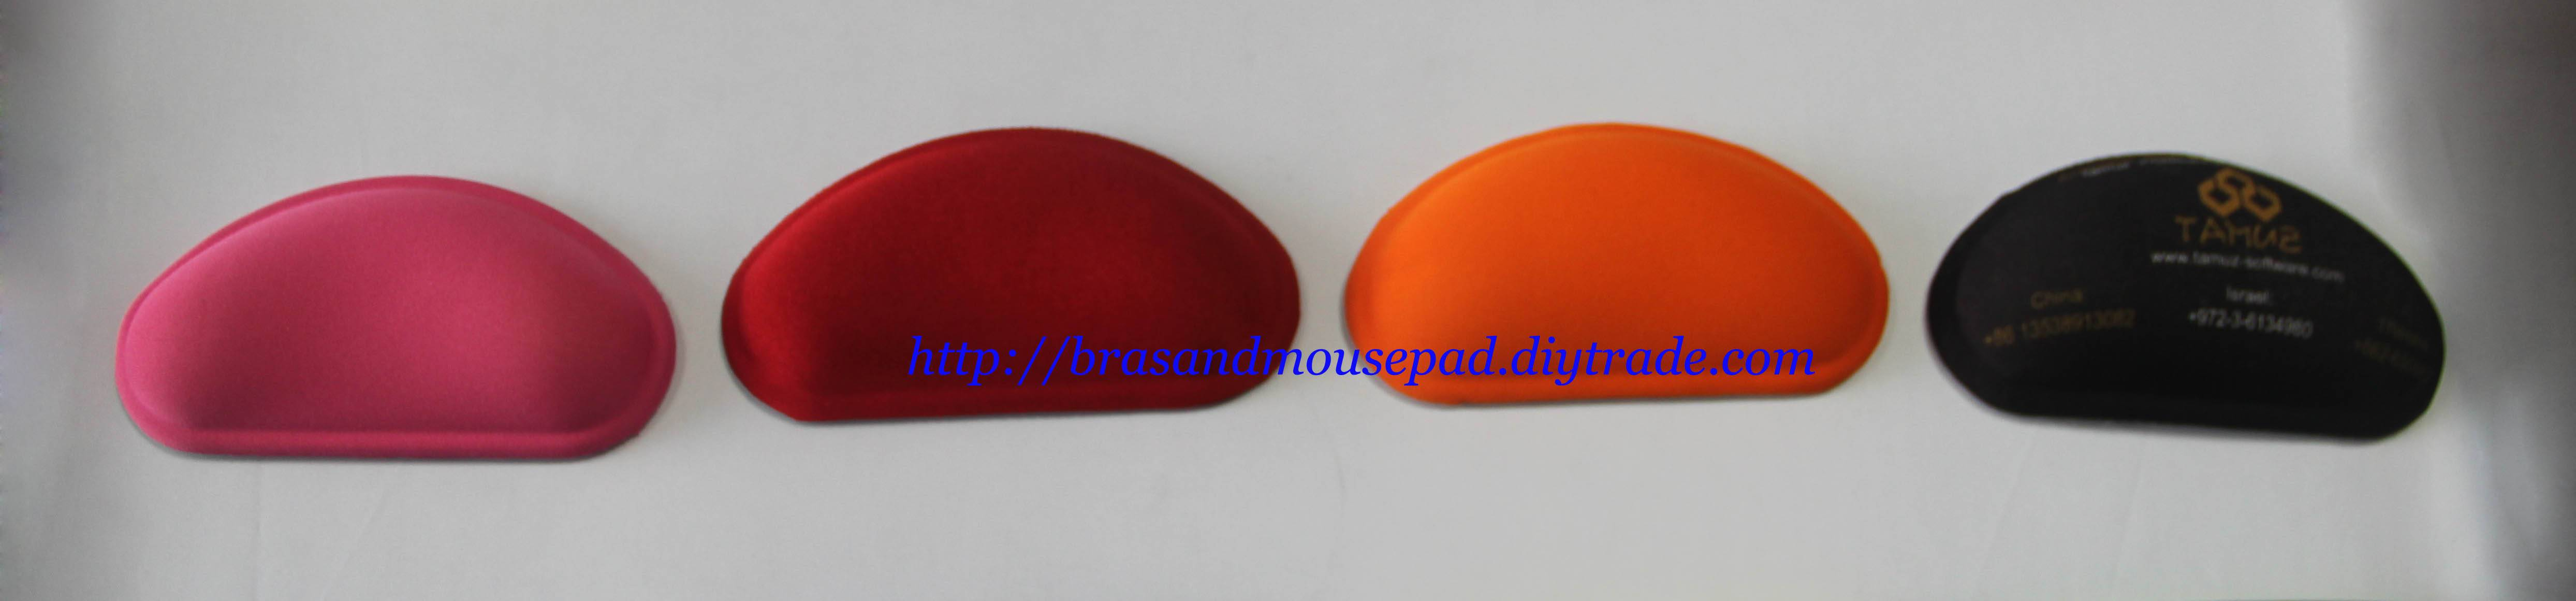 gel wrist rest for computer mouse